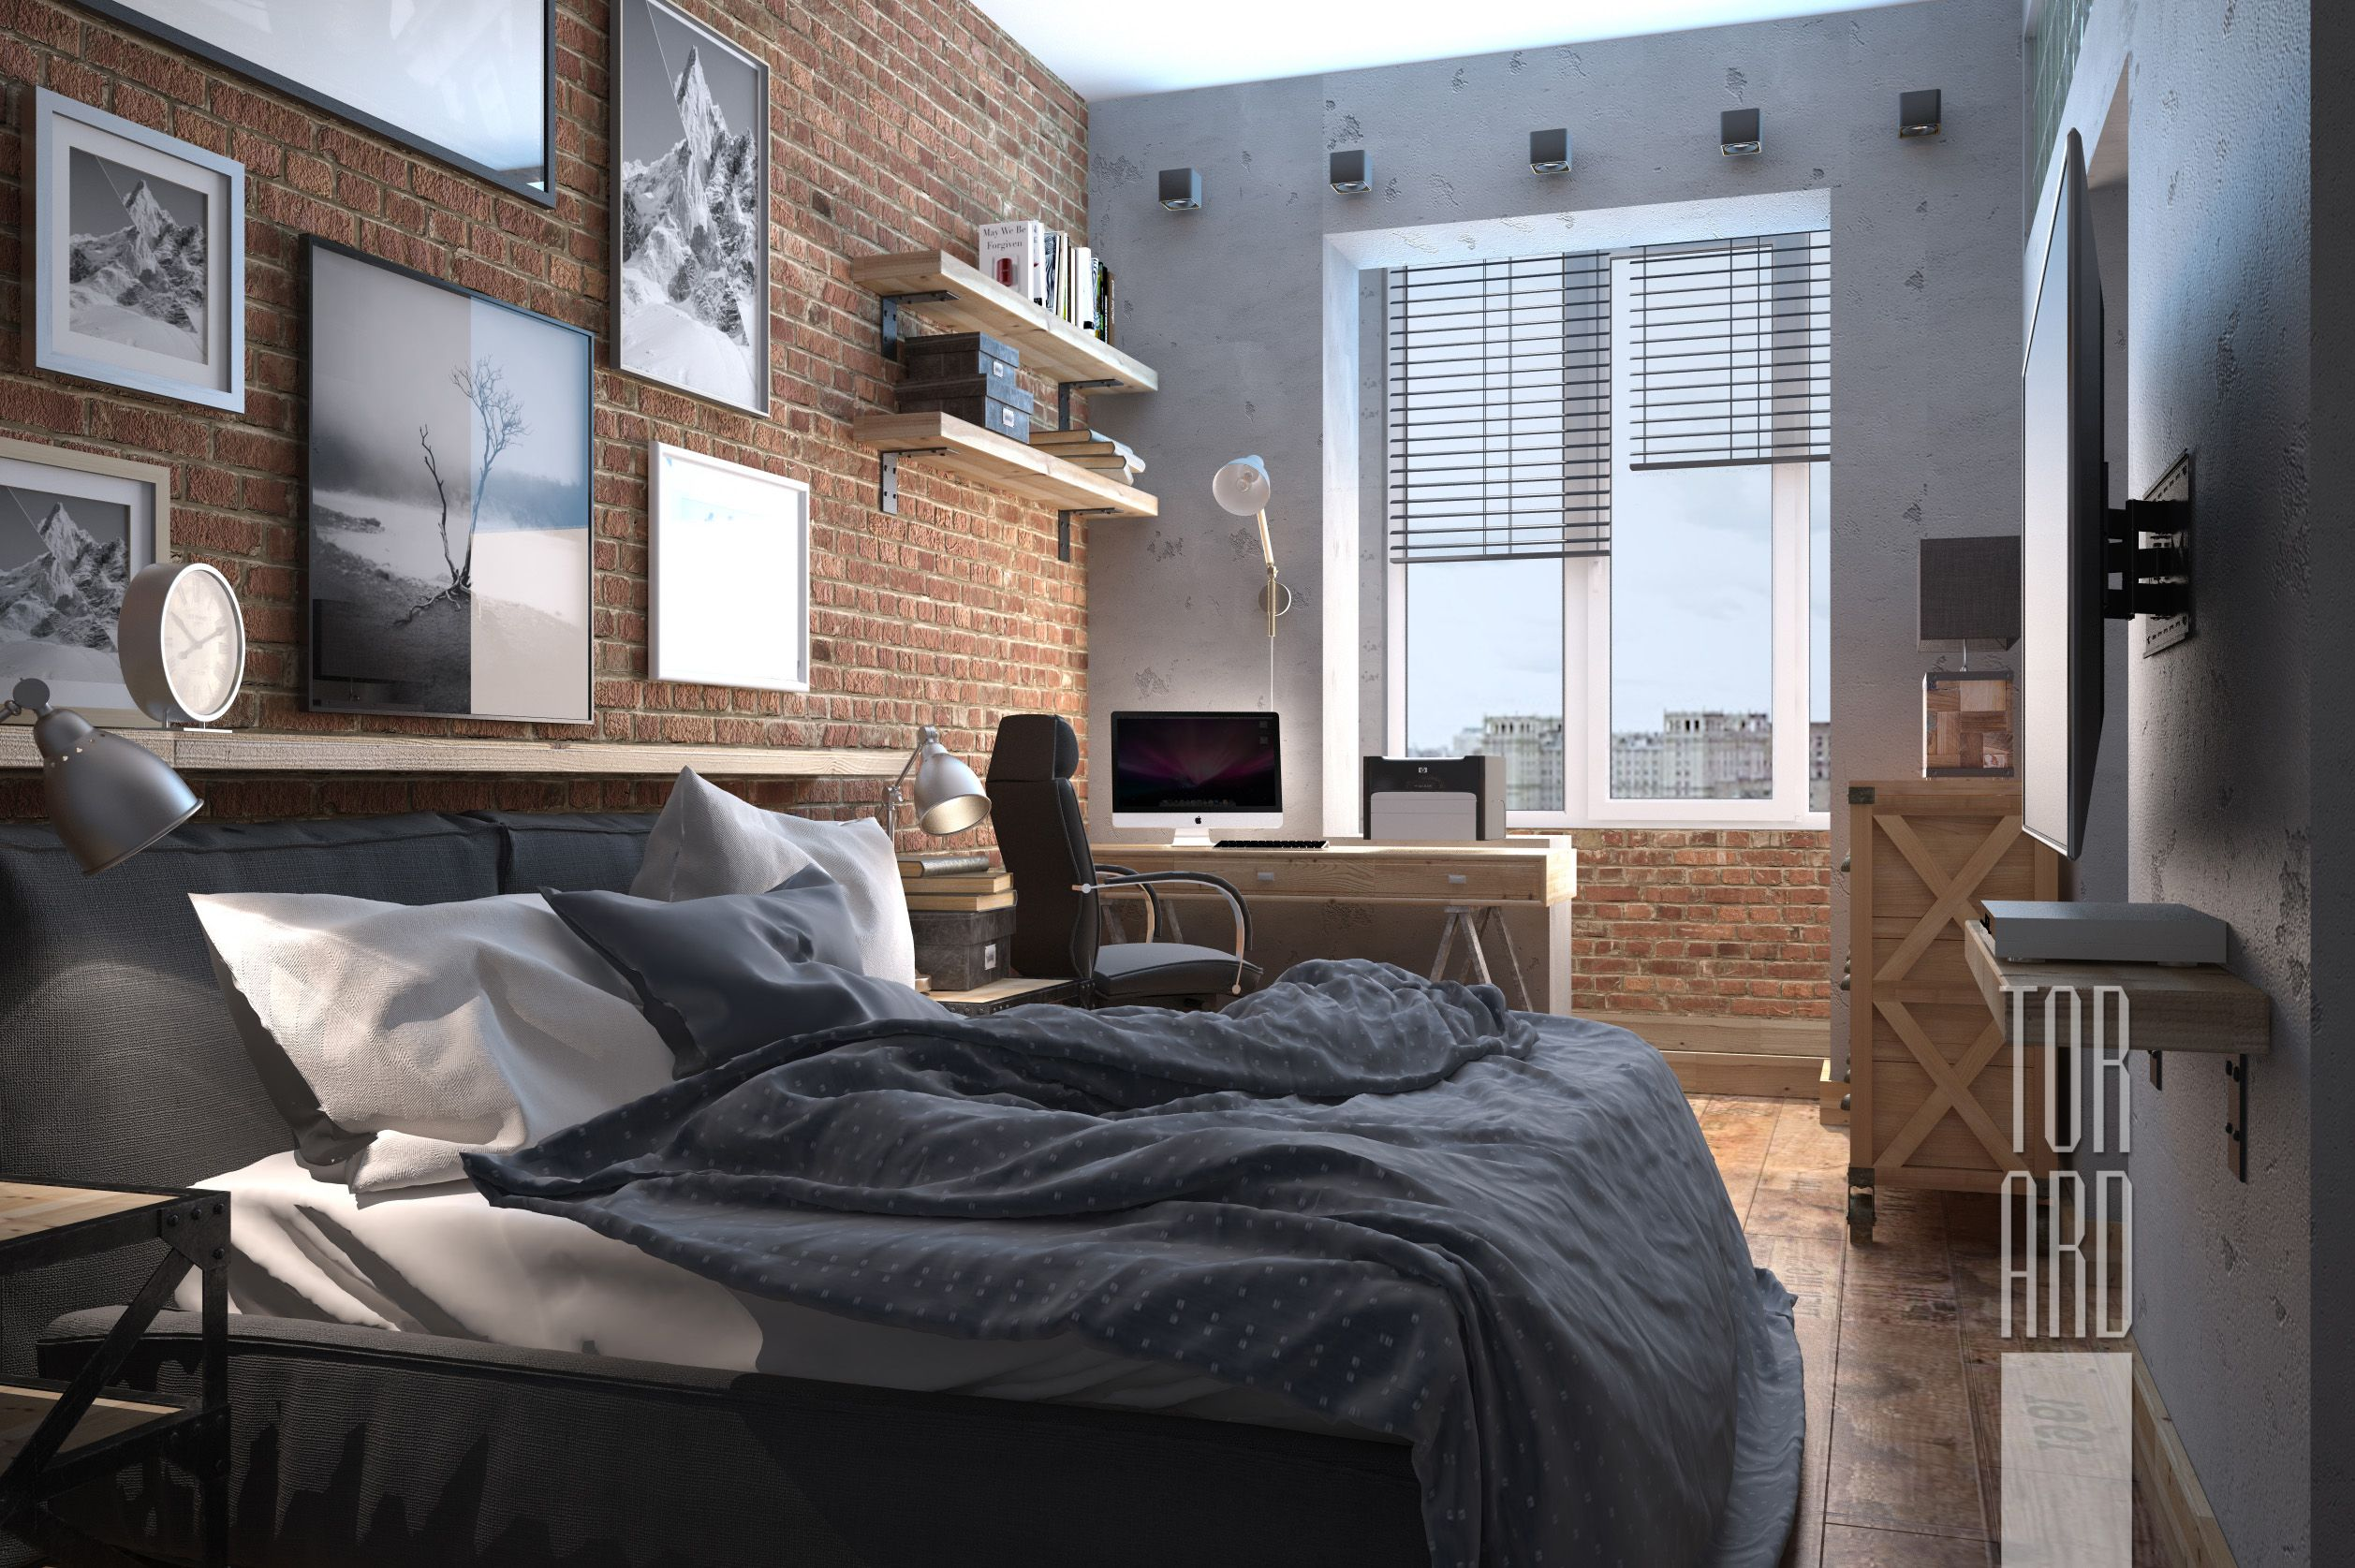 Loft apartments in Moscow • Brick wall • Bedroom design • bachelor ...